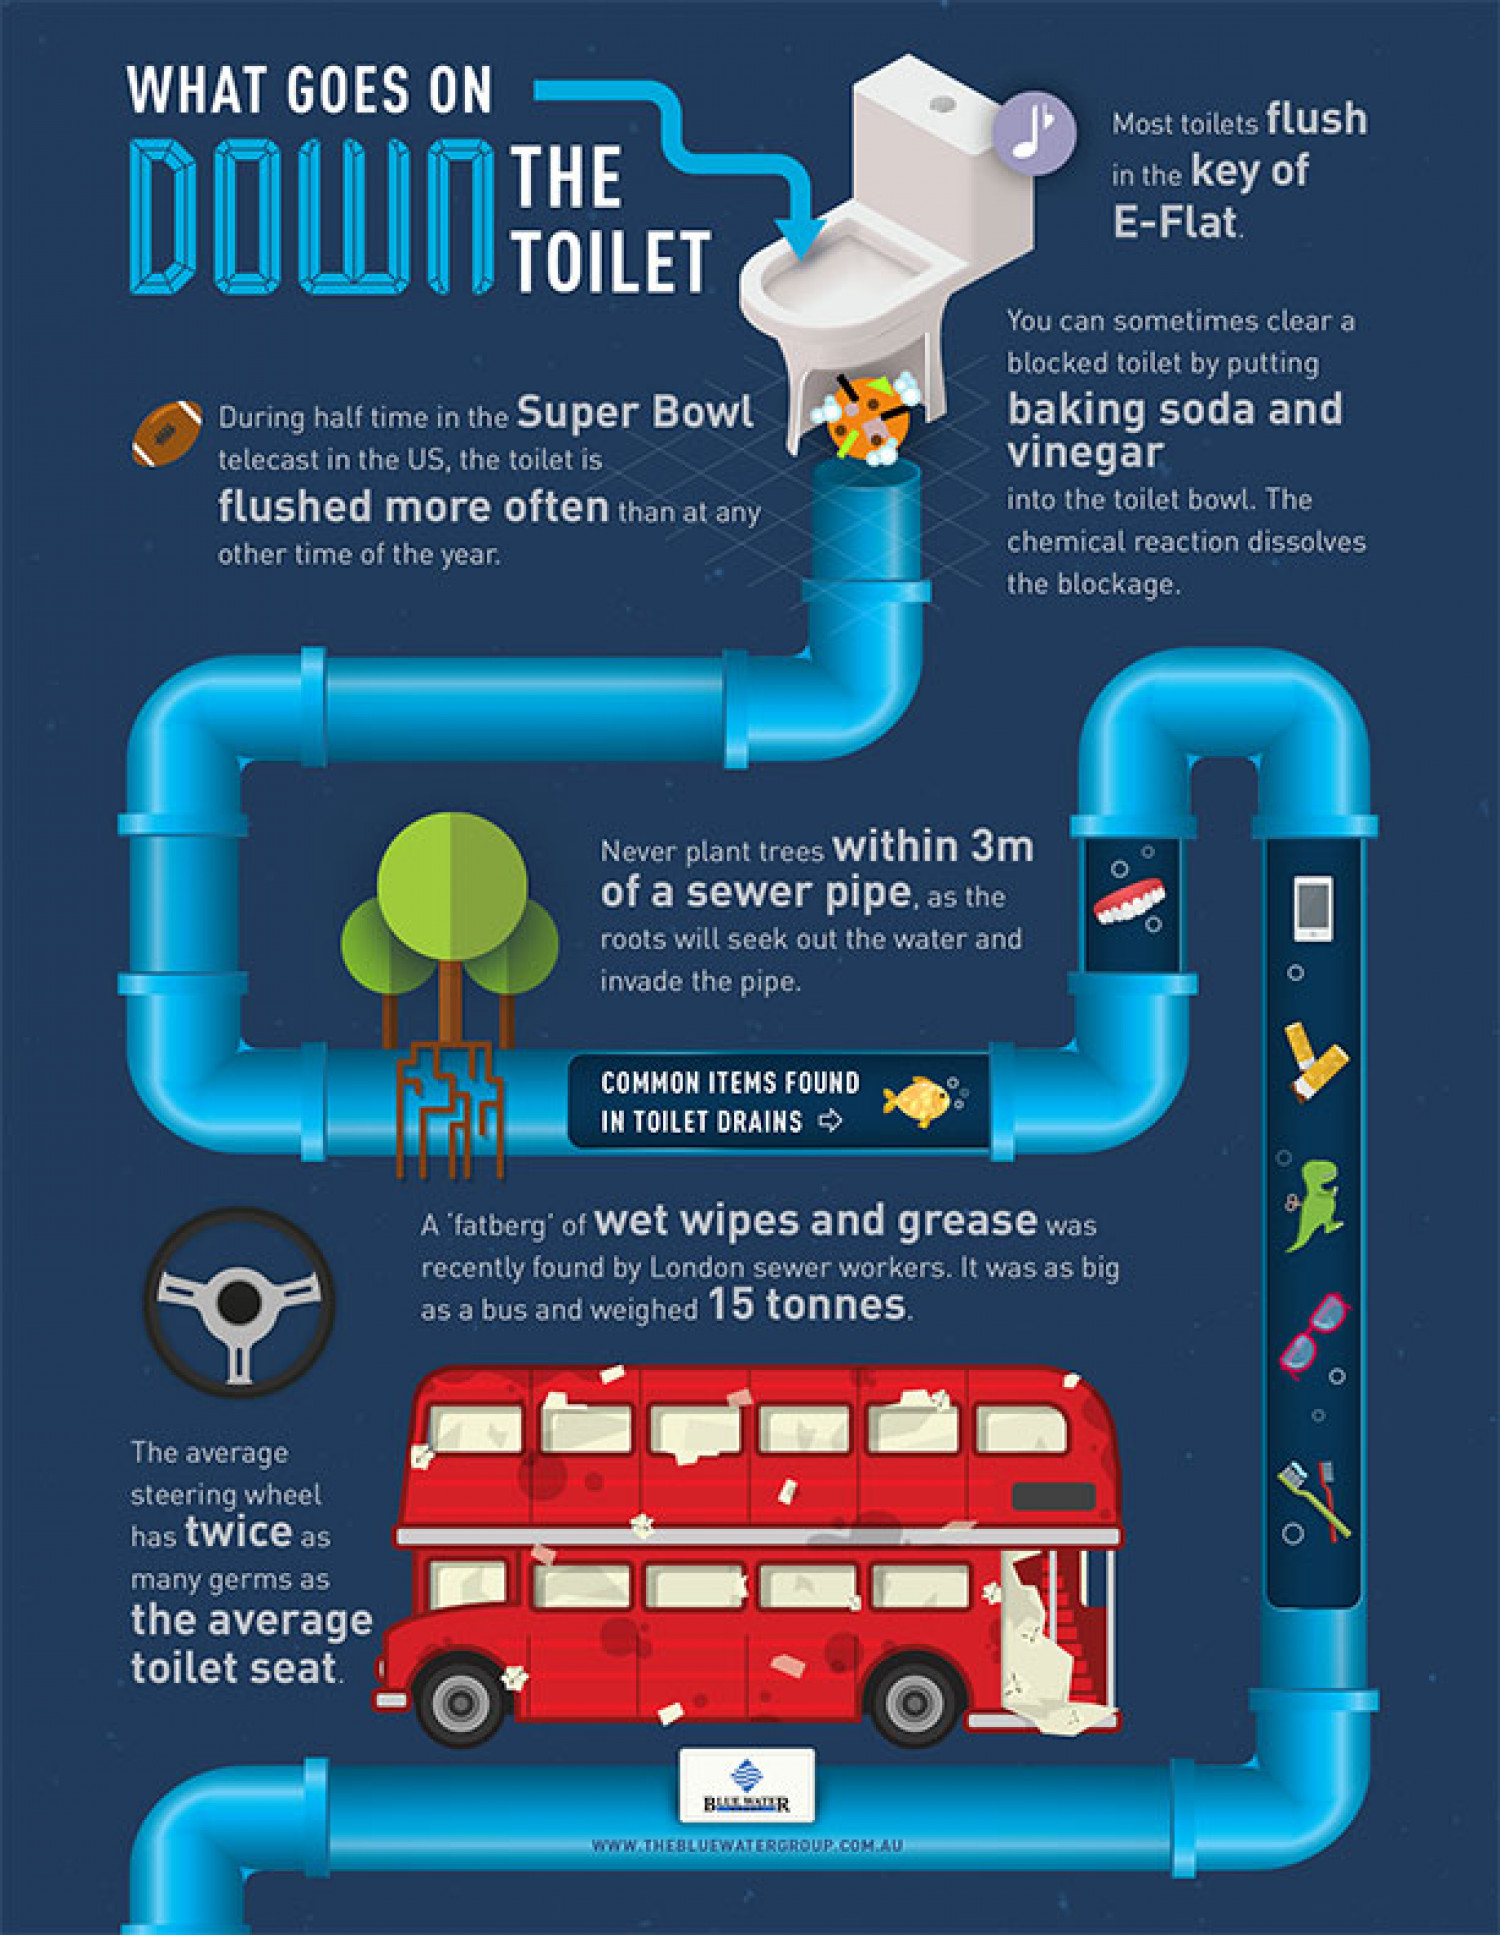 What Goes on Down the Toilet Infographic